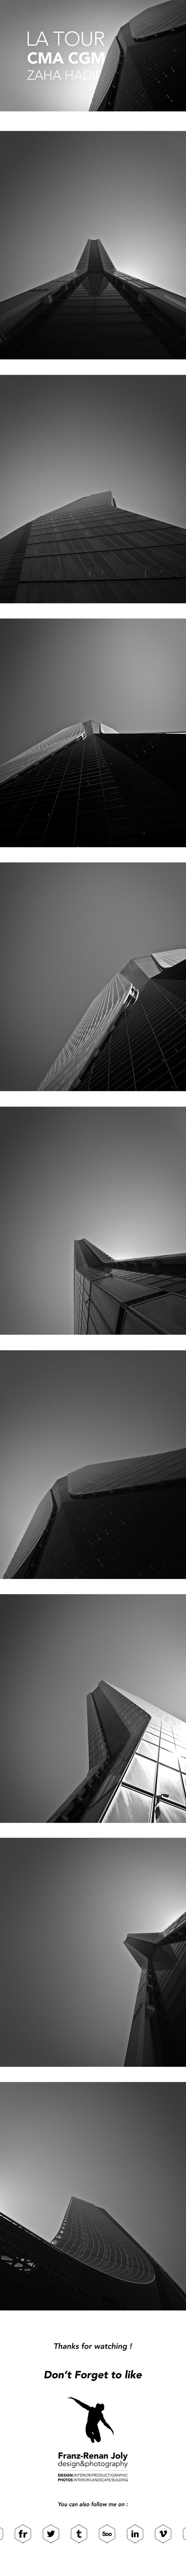 Zaha Hadid By F R J Design And Photography Via Behance